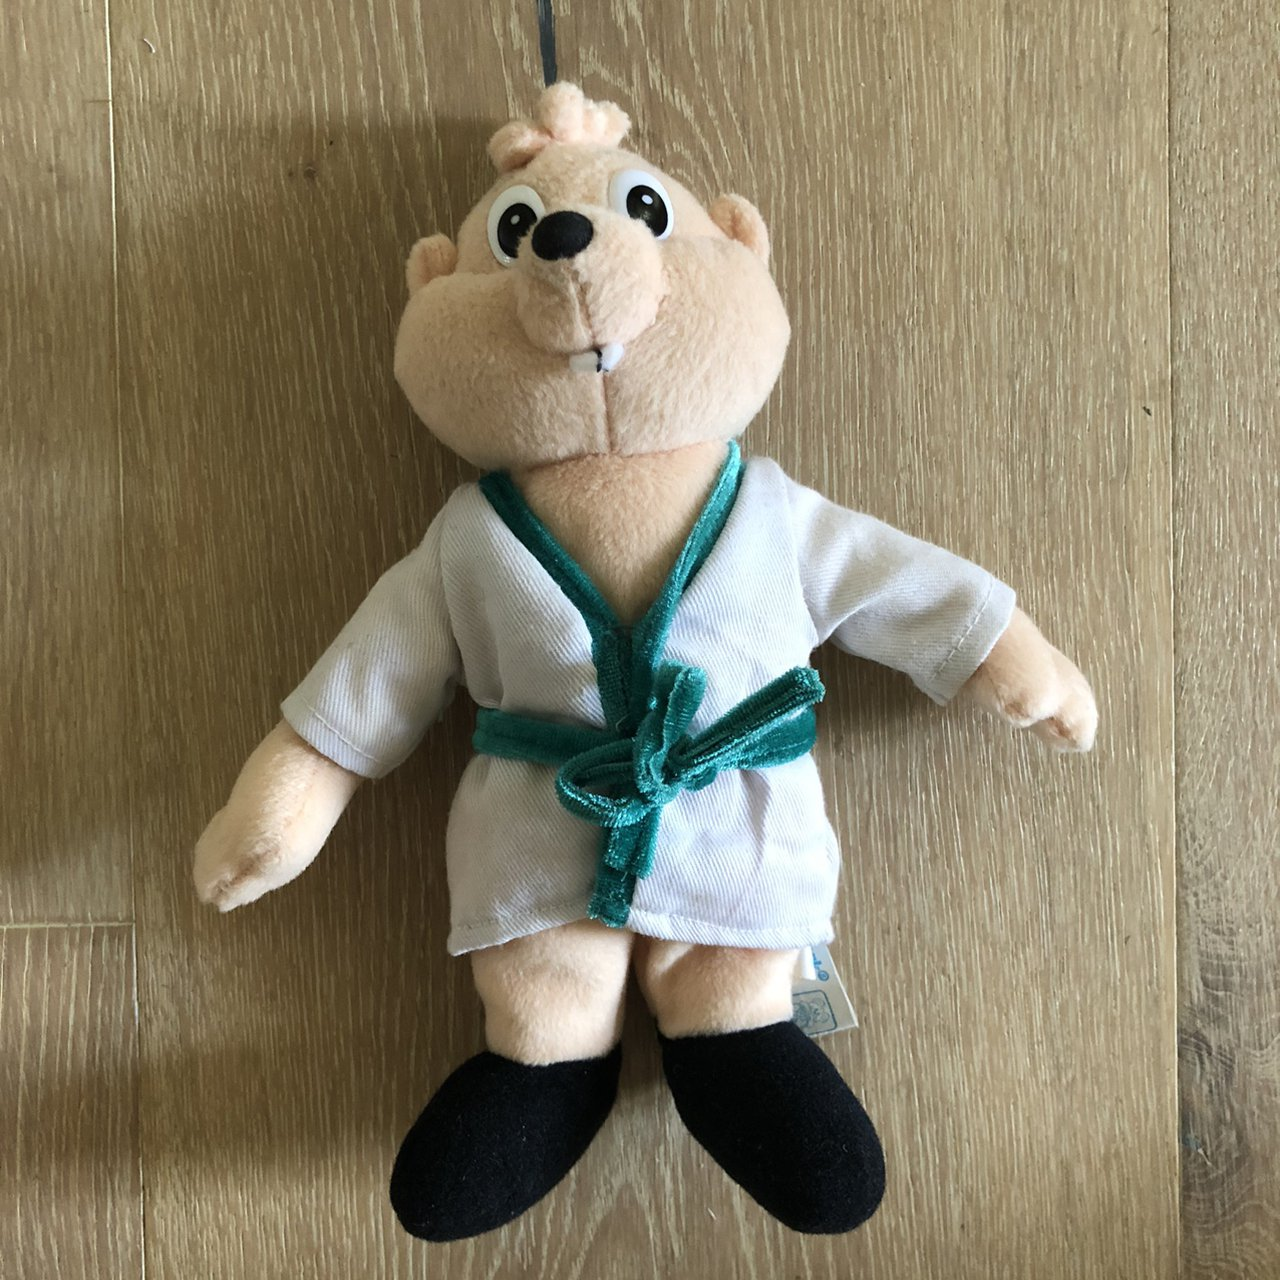 Vintage Alvin And The Chipmunks Karate Theodore Depop